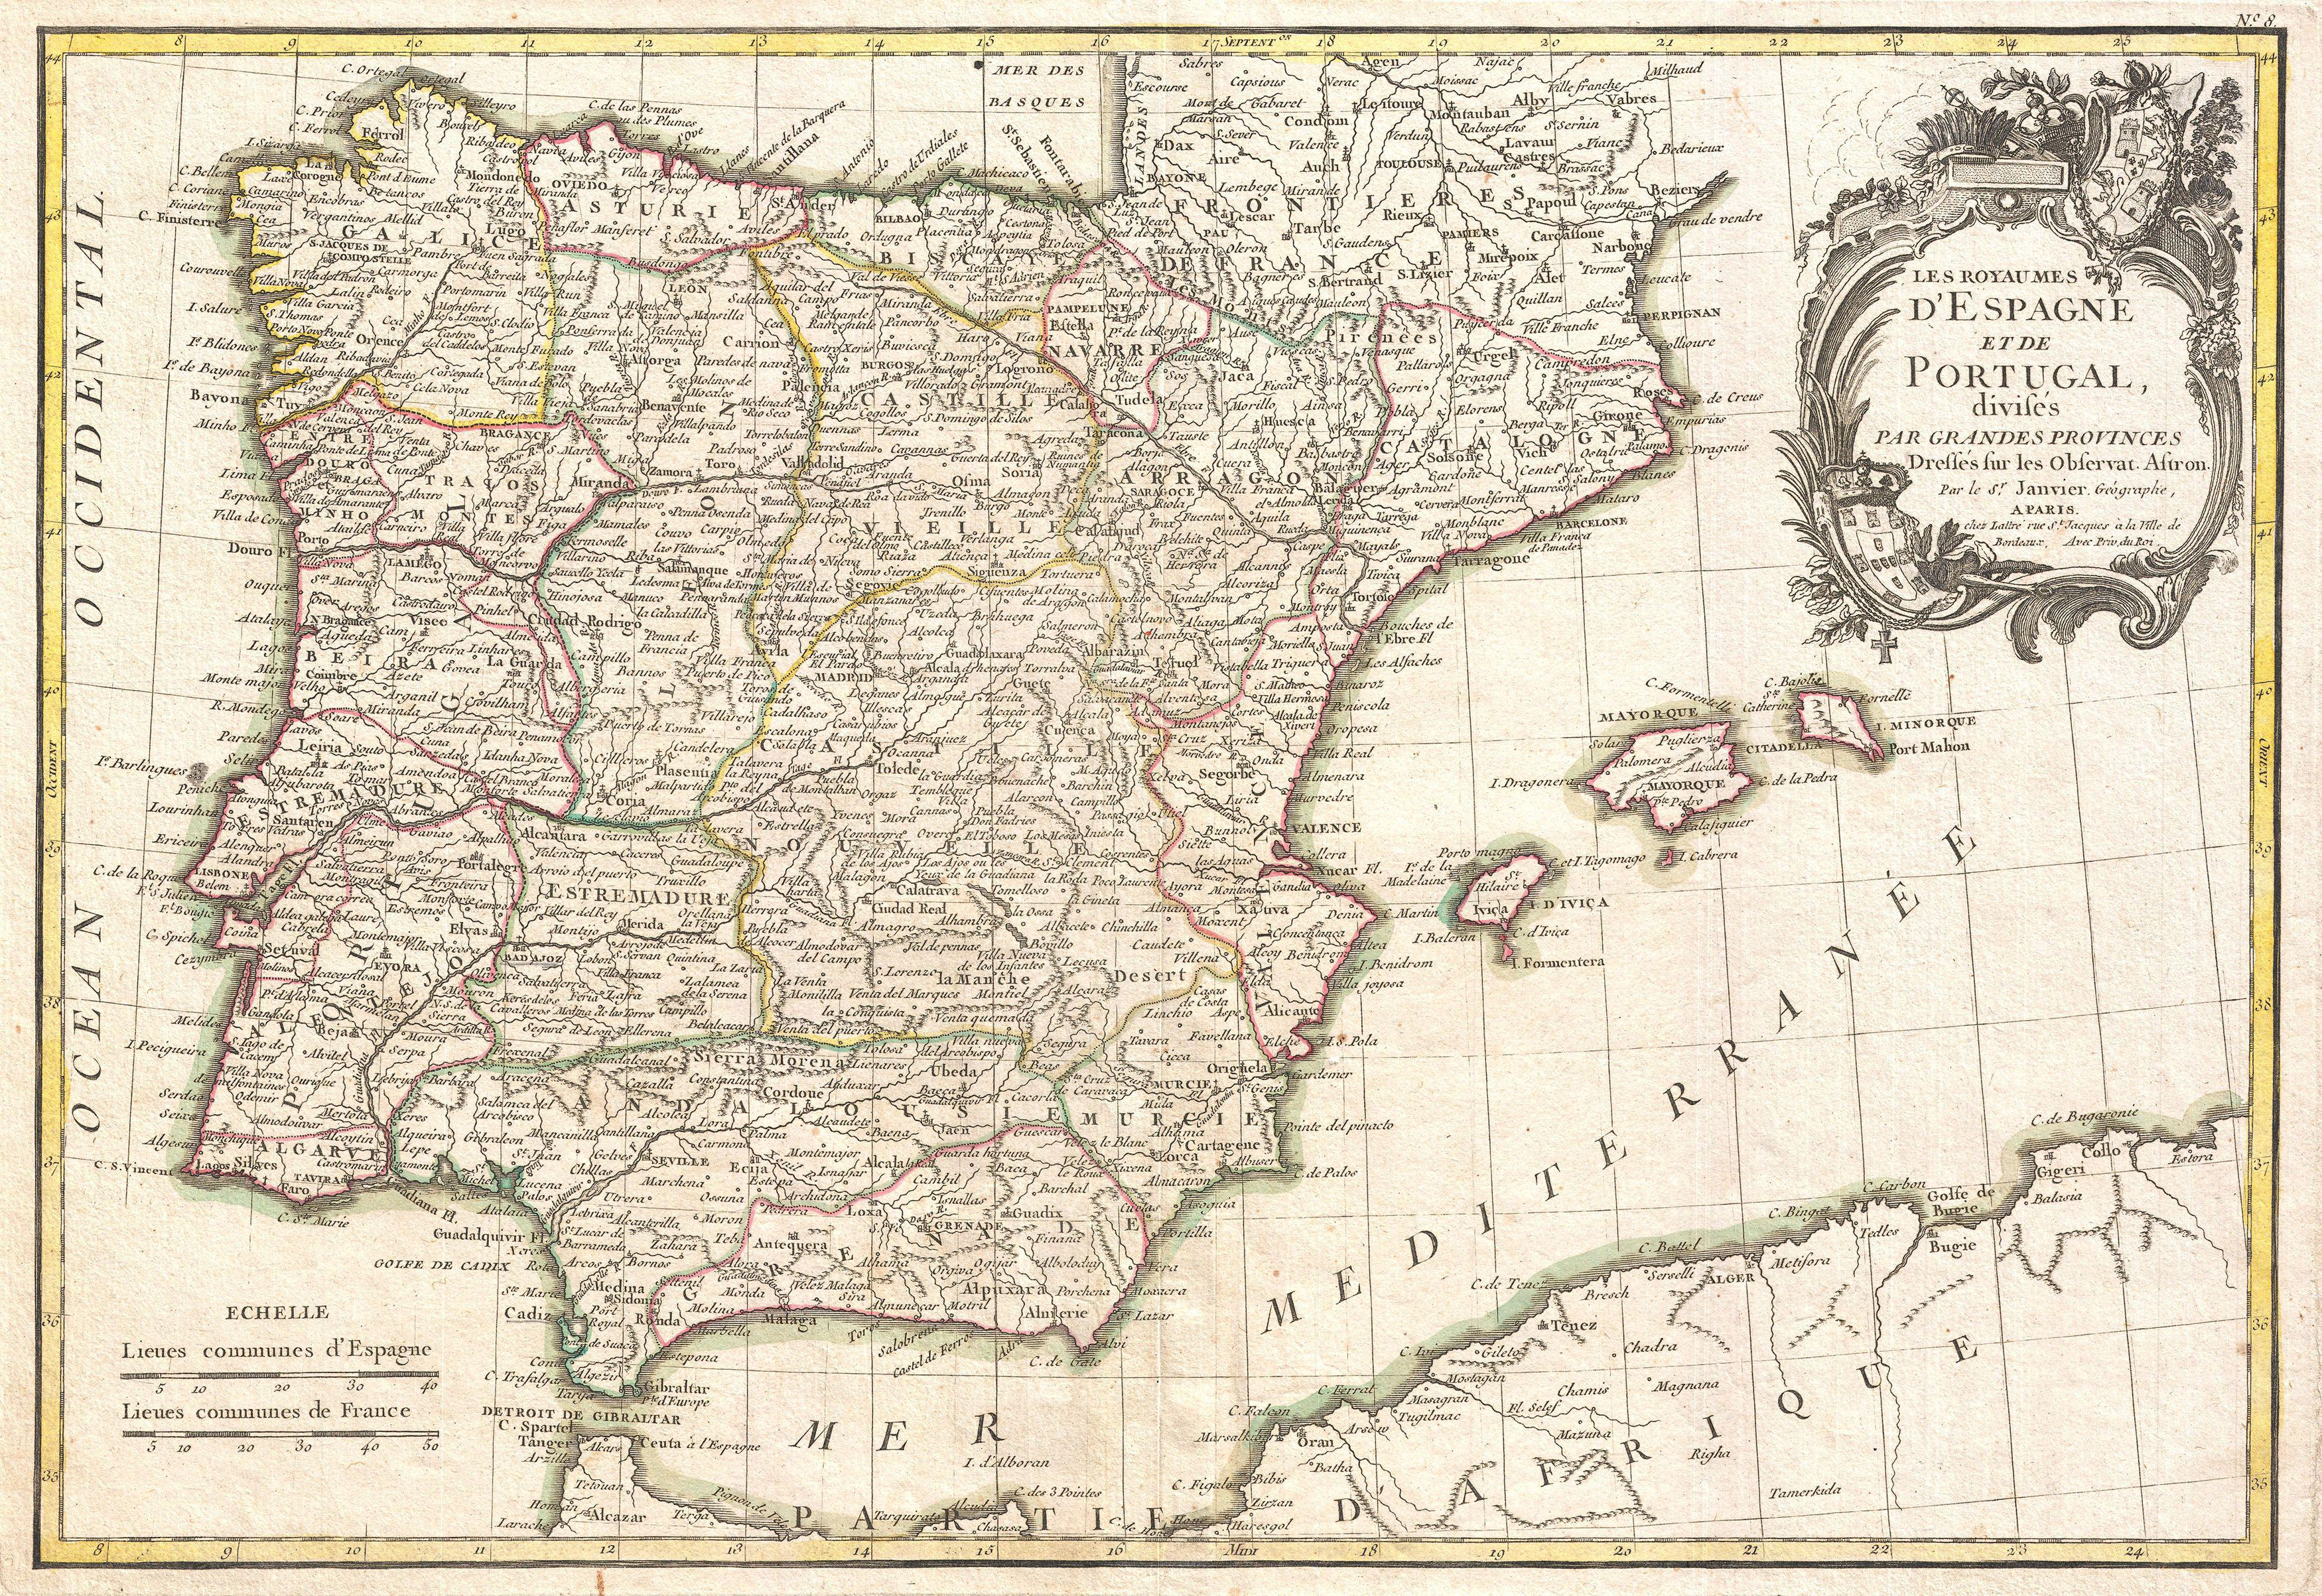 File Name : 1775_Janvier_Map_of_Spain_and_Portugal_-_Geographicus_ ...